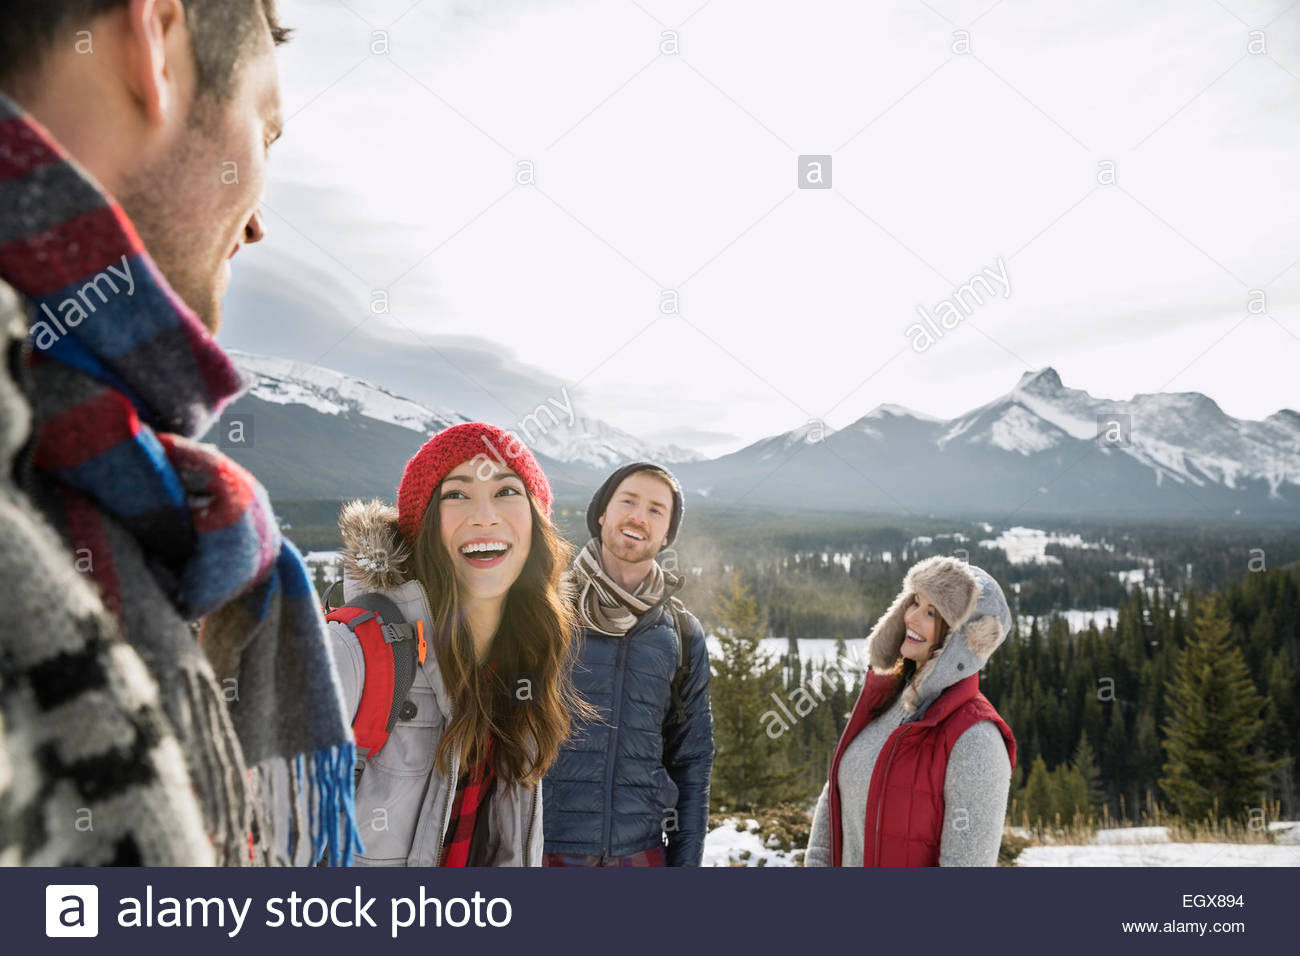 Friends laughing below snowy mountains - Stock Image